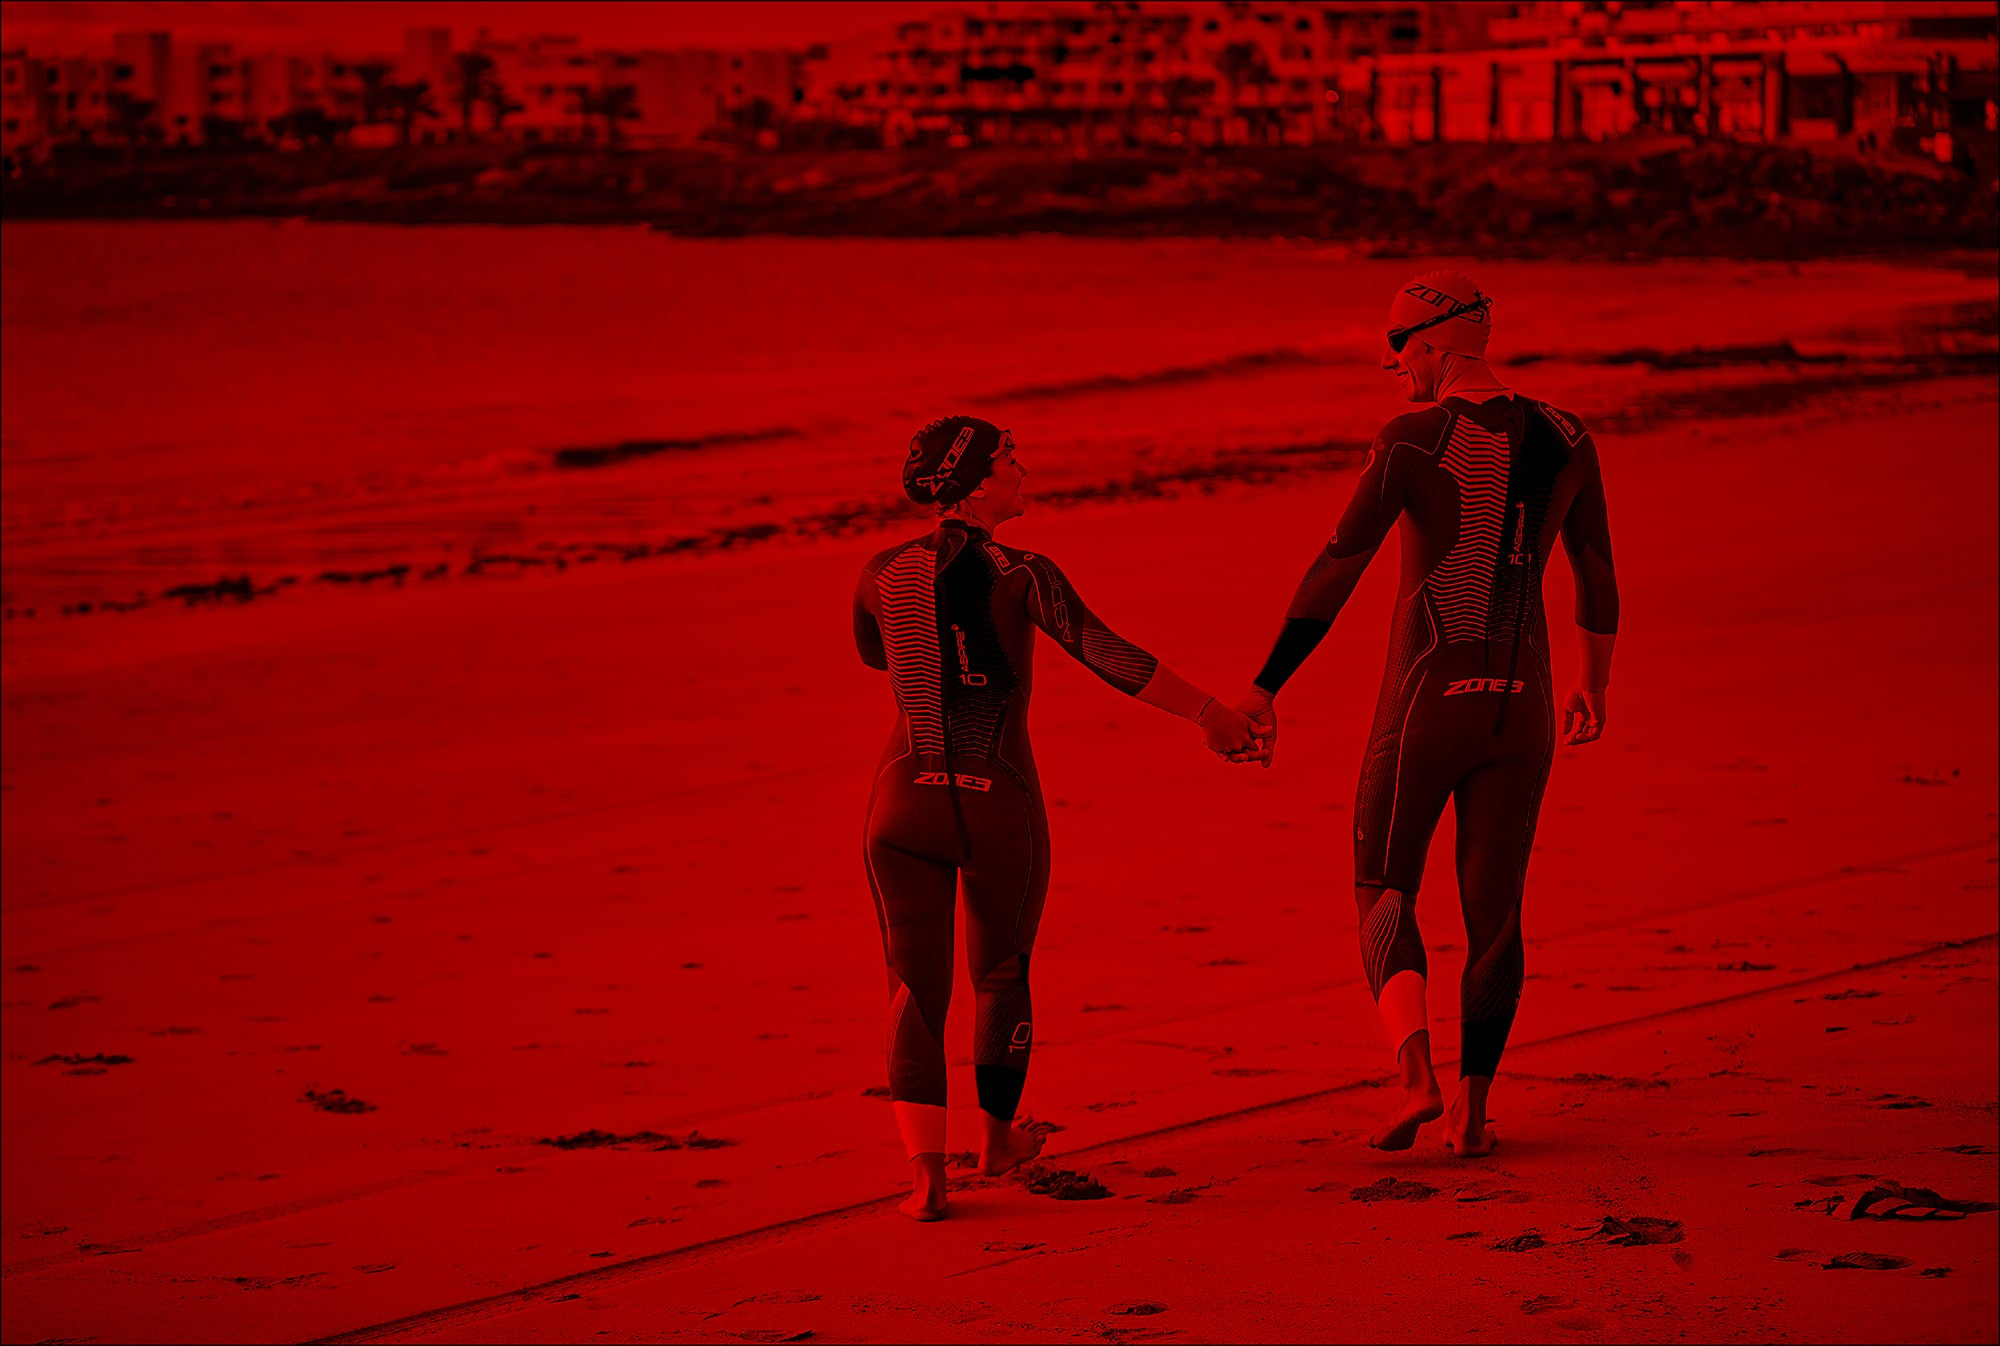 10 Reasons to (not) Date a Triathlete